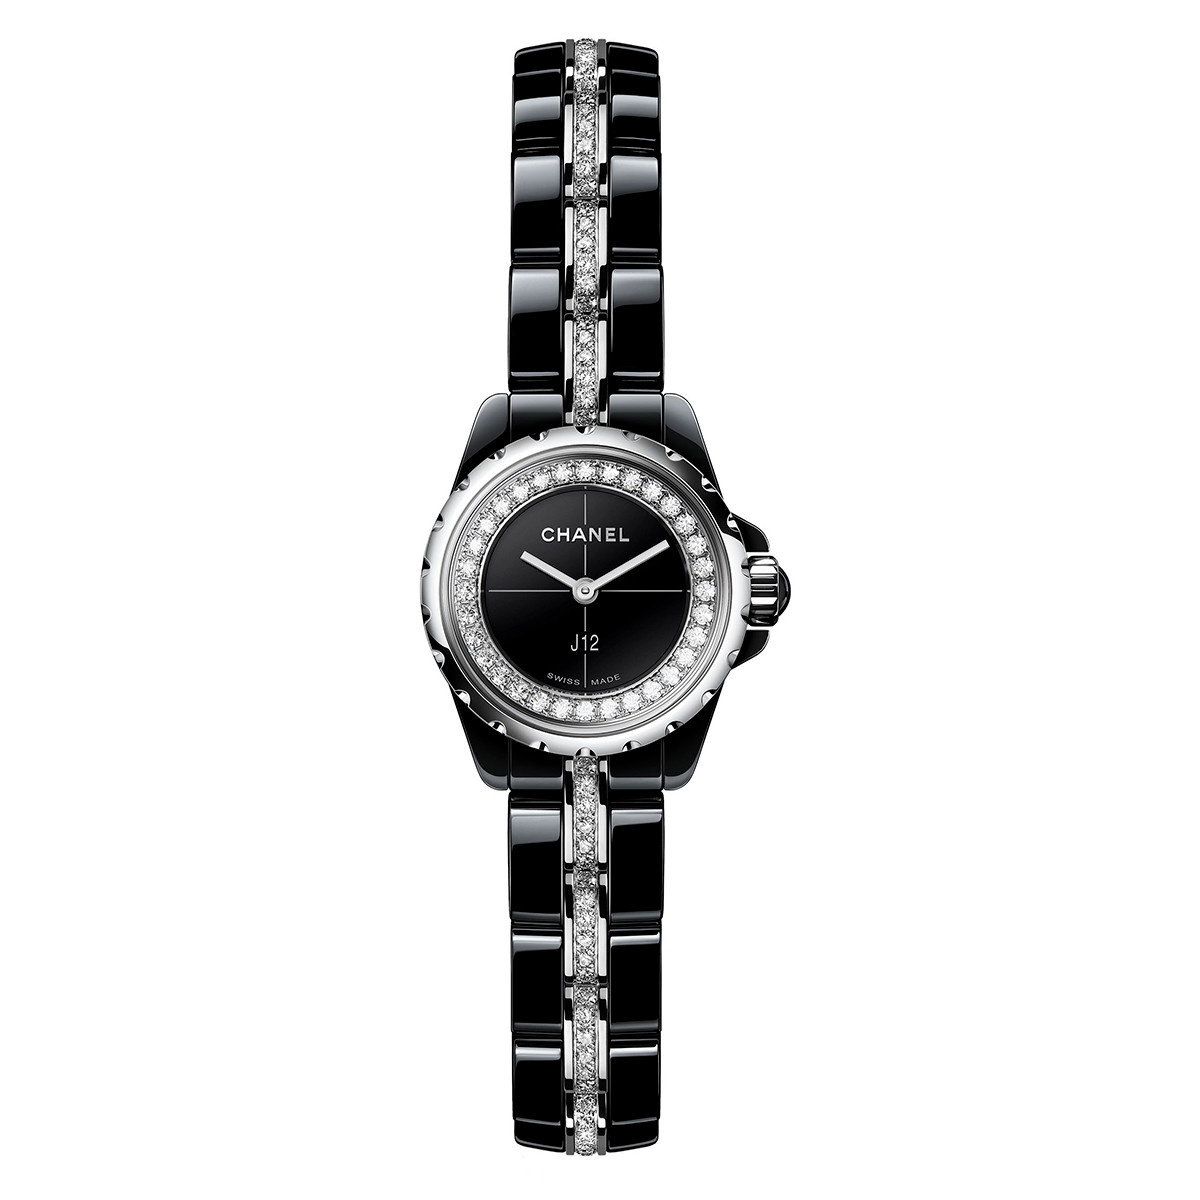 J12 19mm Black Ceramic & Diamonds (H5236)